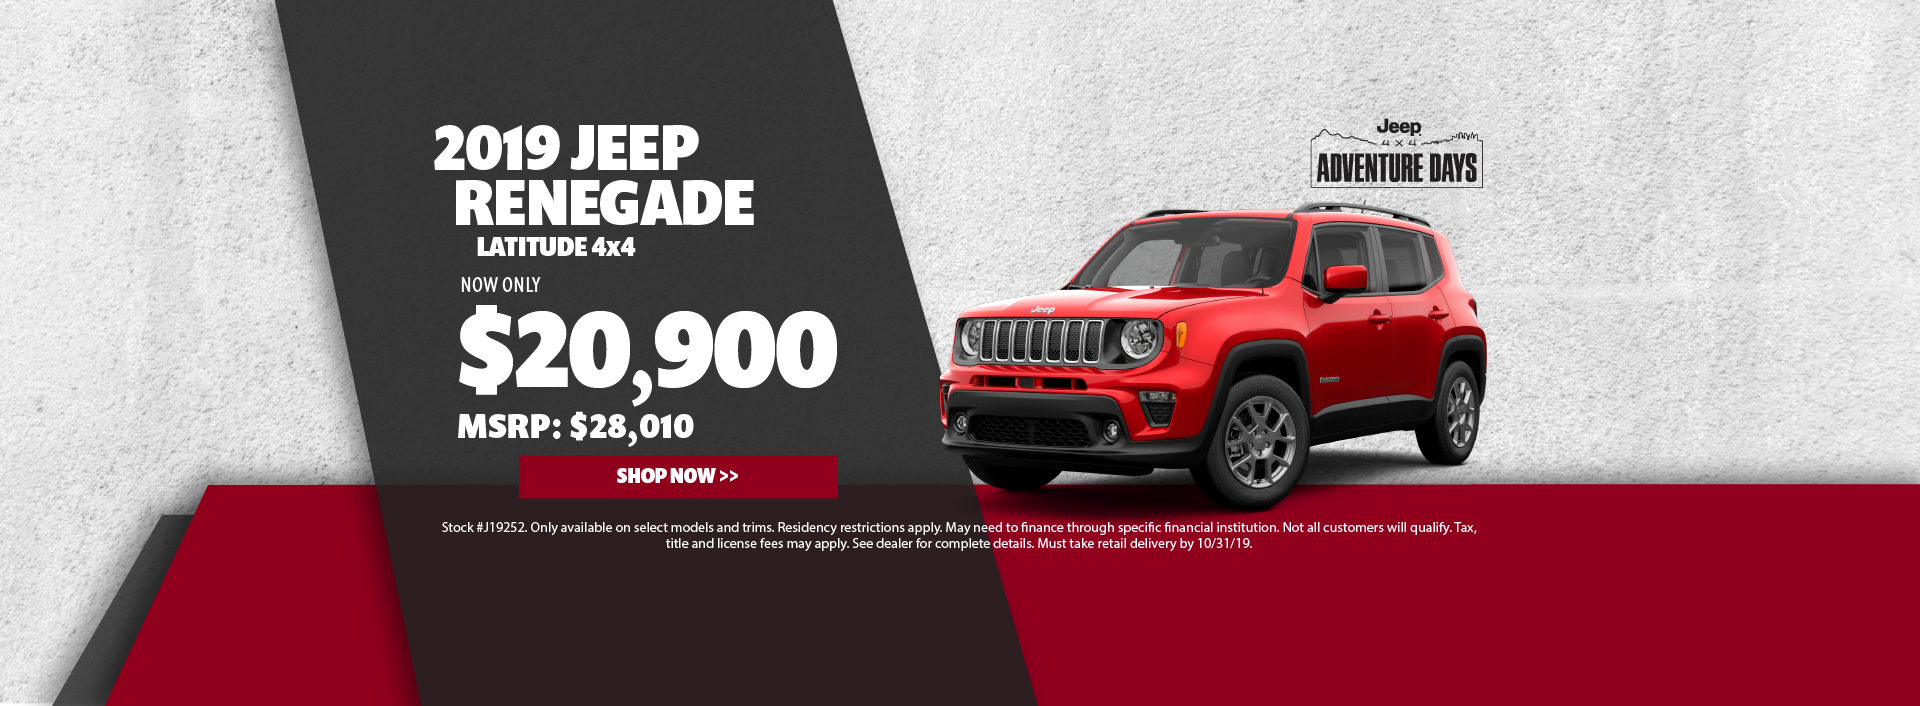 2019 Jeep Renegade Offer